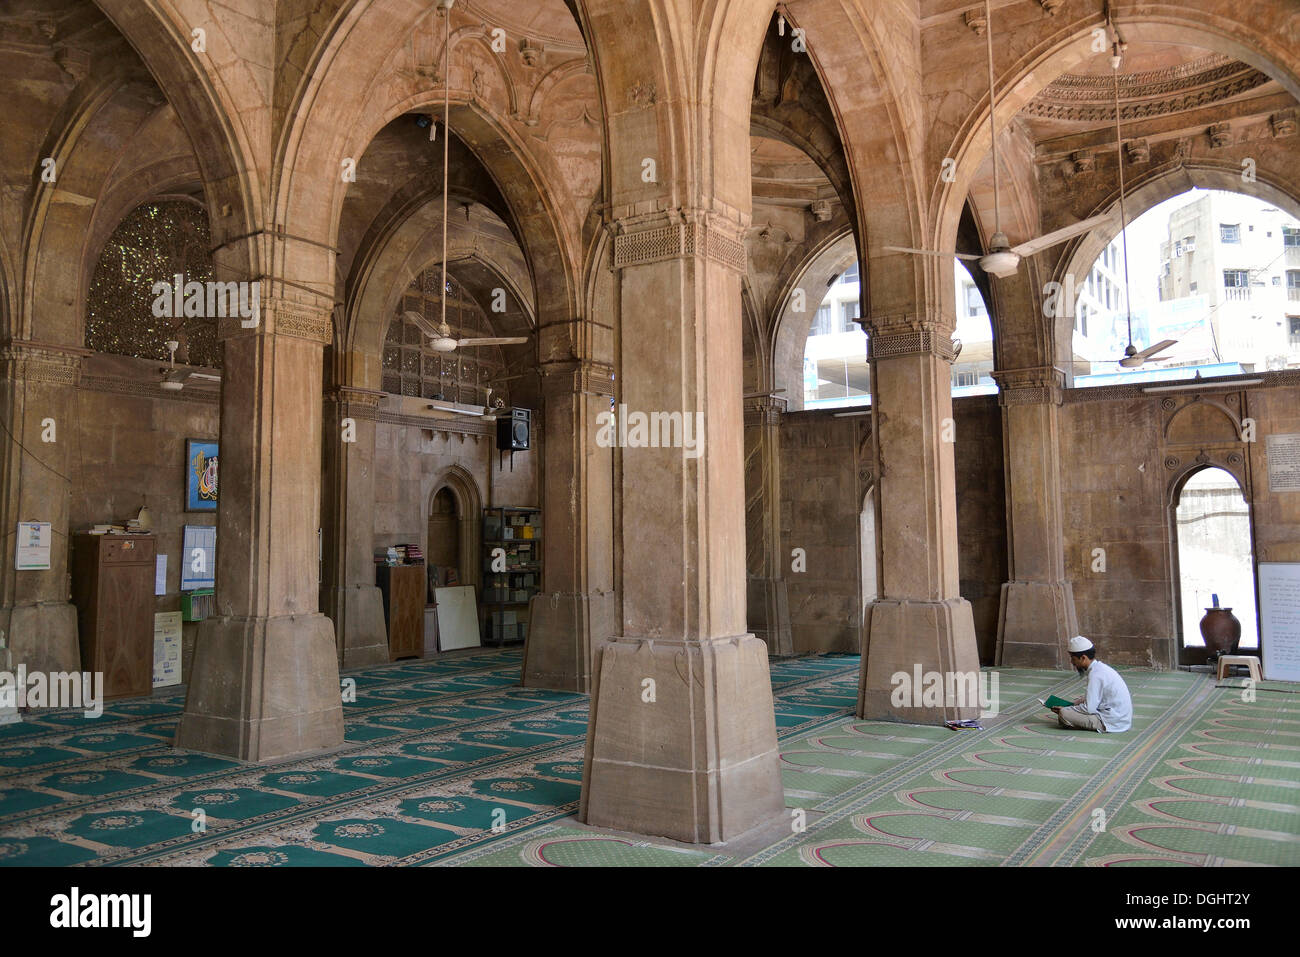 Prayer room of the Sidi Sayed Mosque, Ahmedabad, Gujarat, India - Stock Image